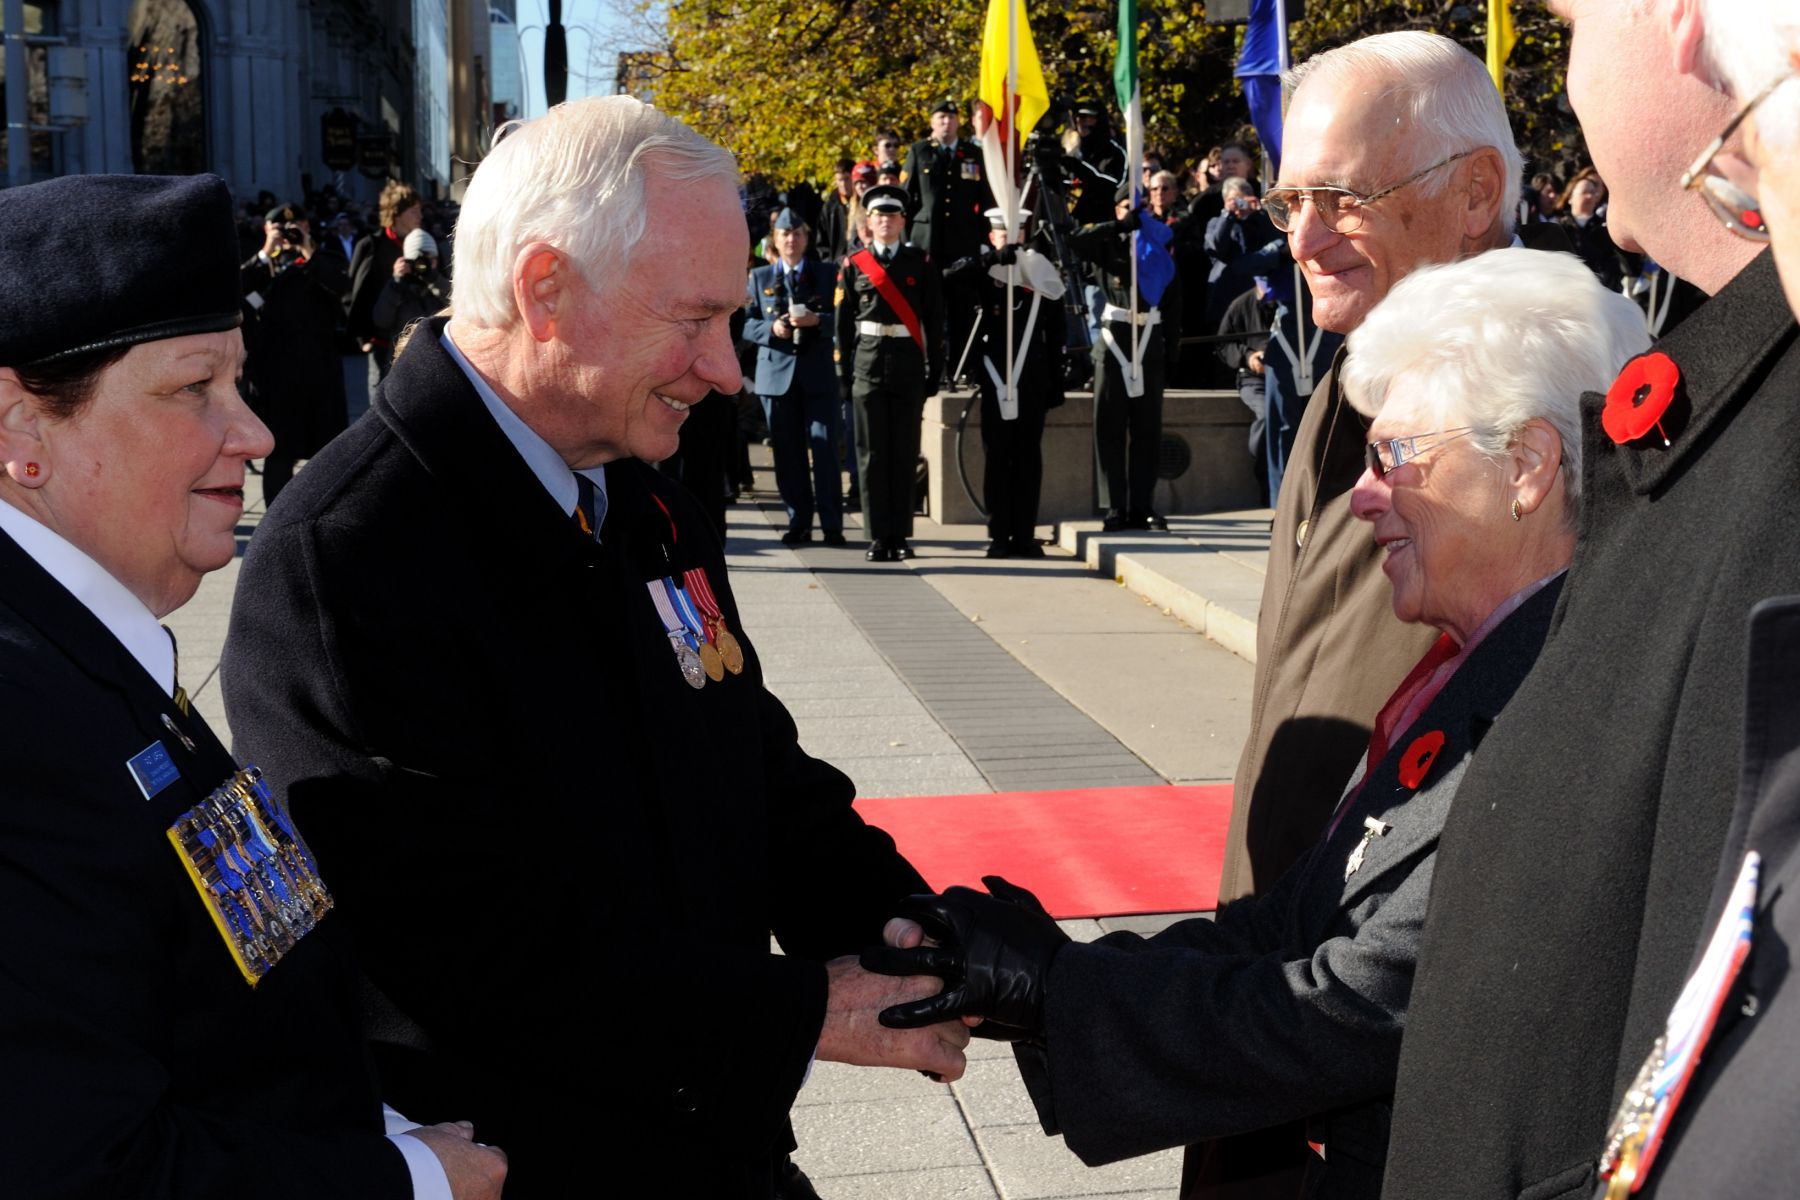 He was then introduced to the 2010 Silver Cross Mother, Mrs. Mabel Girouard. By attending the National Remembrance Day Ceremony in Ottawa, Mrs. Girouard represented all Canadian mothers who have lost children in the military service to their nation.